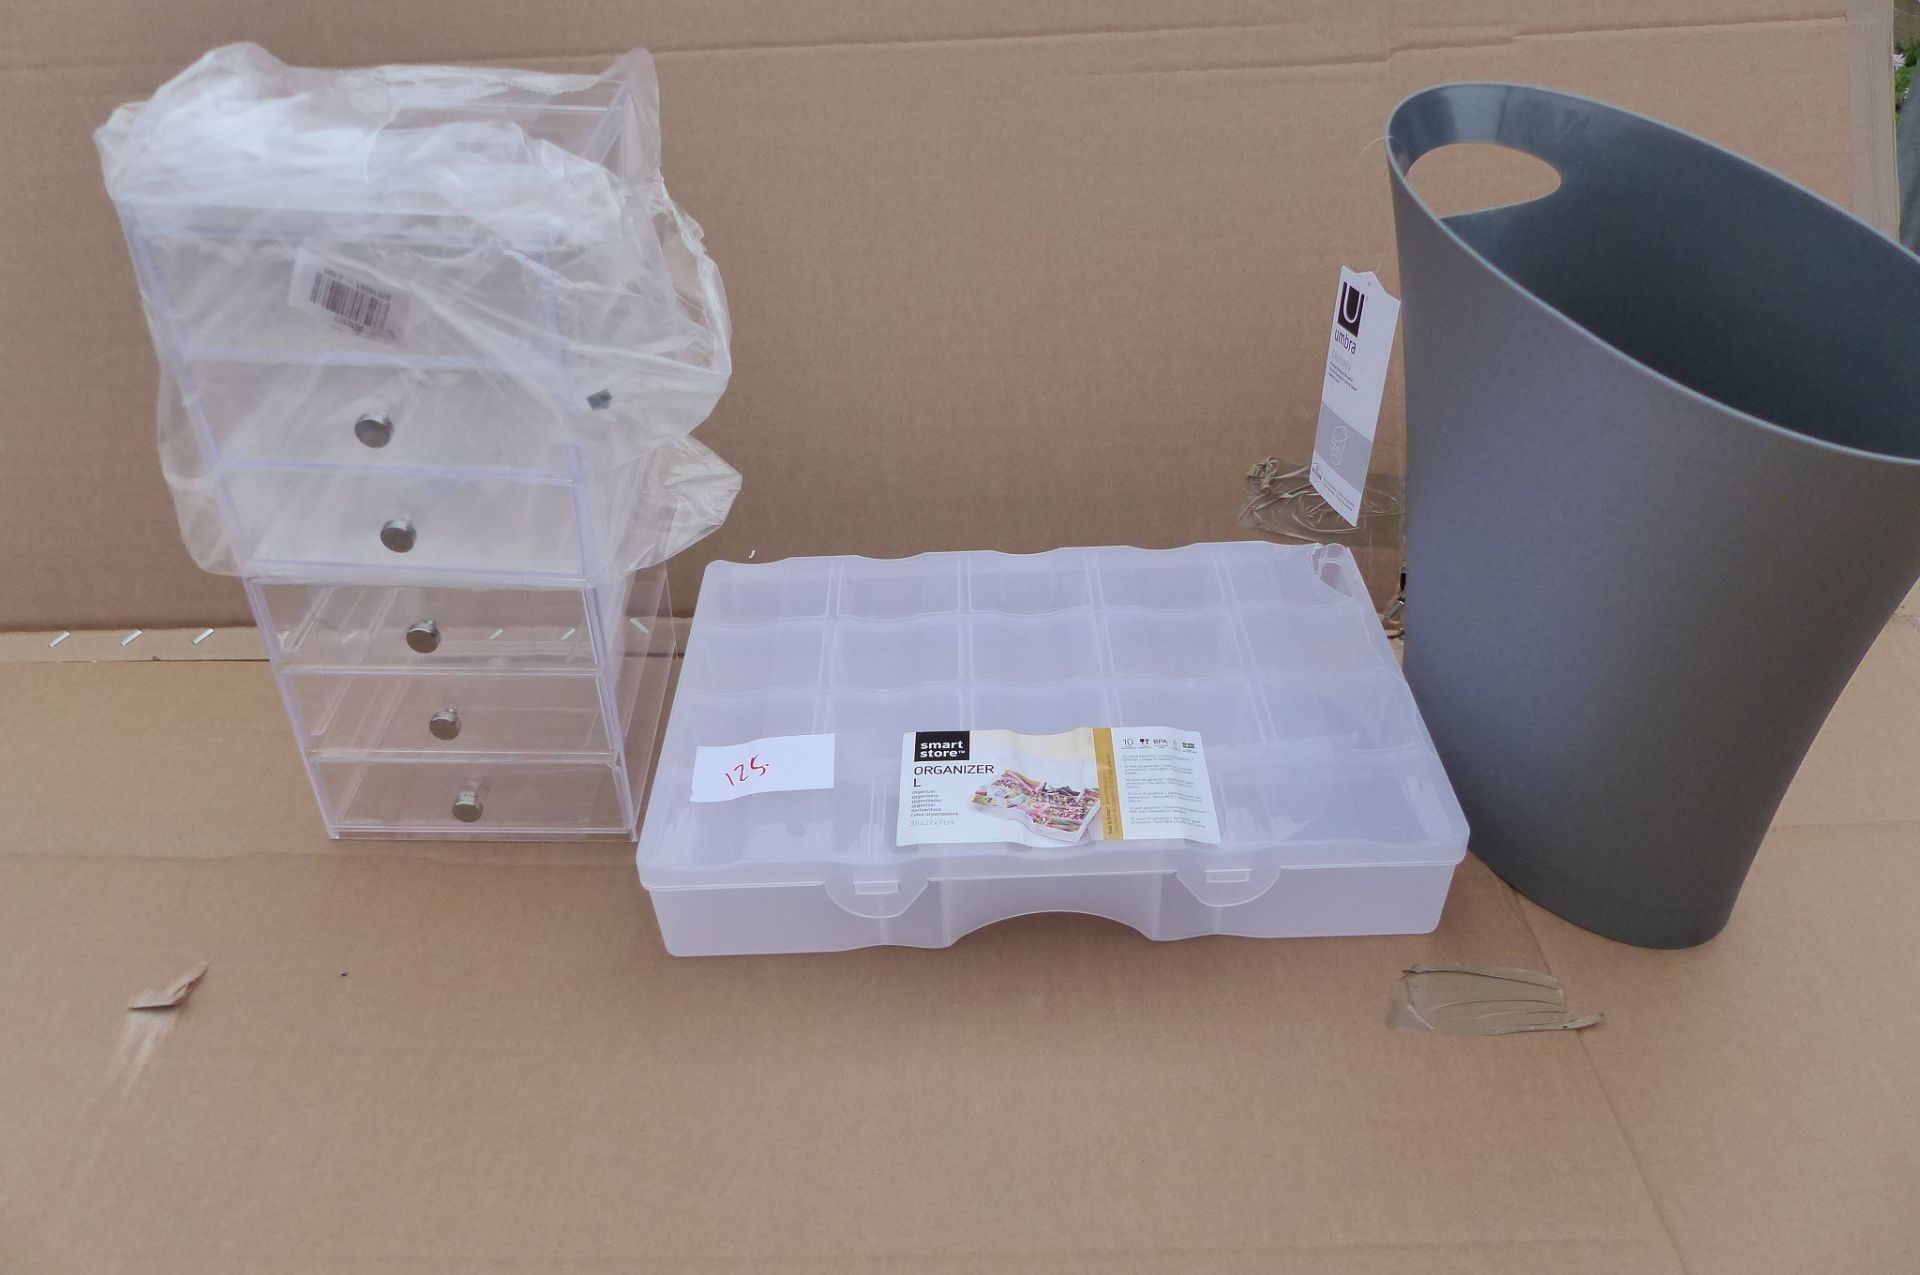 4 items Storage boxes and Umbra bin